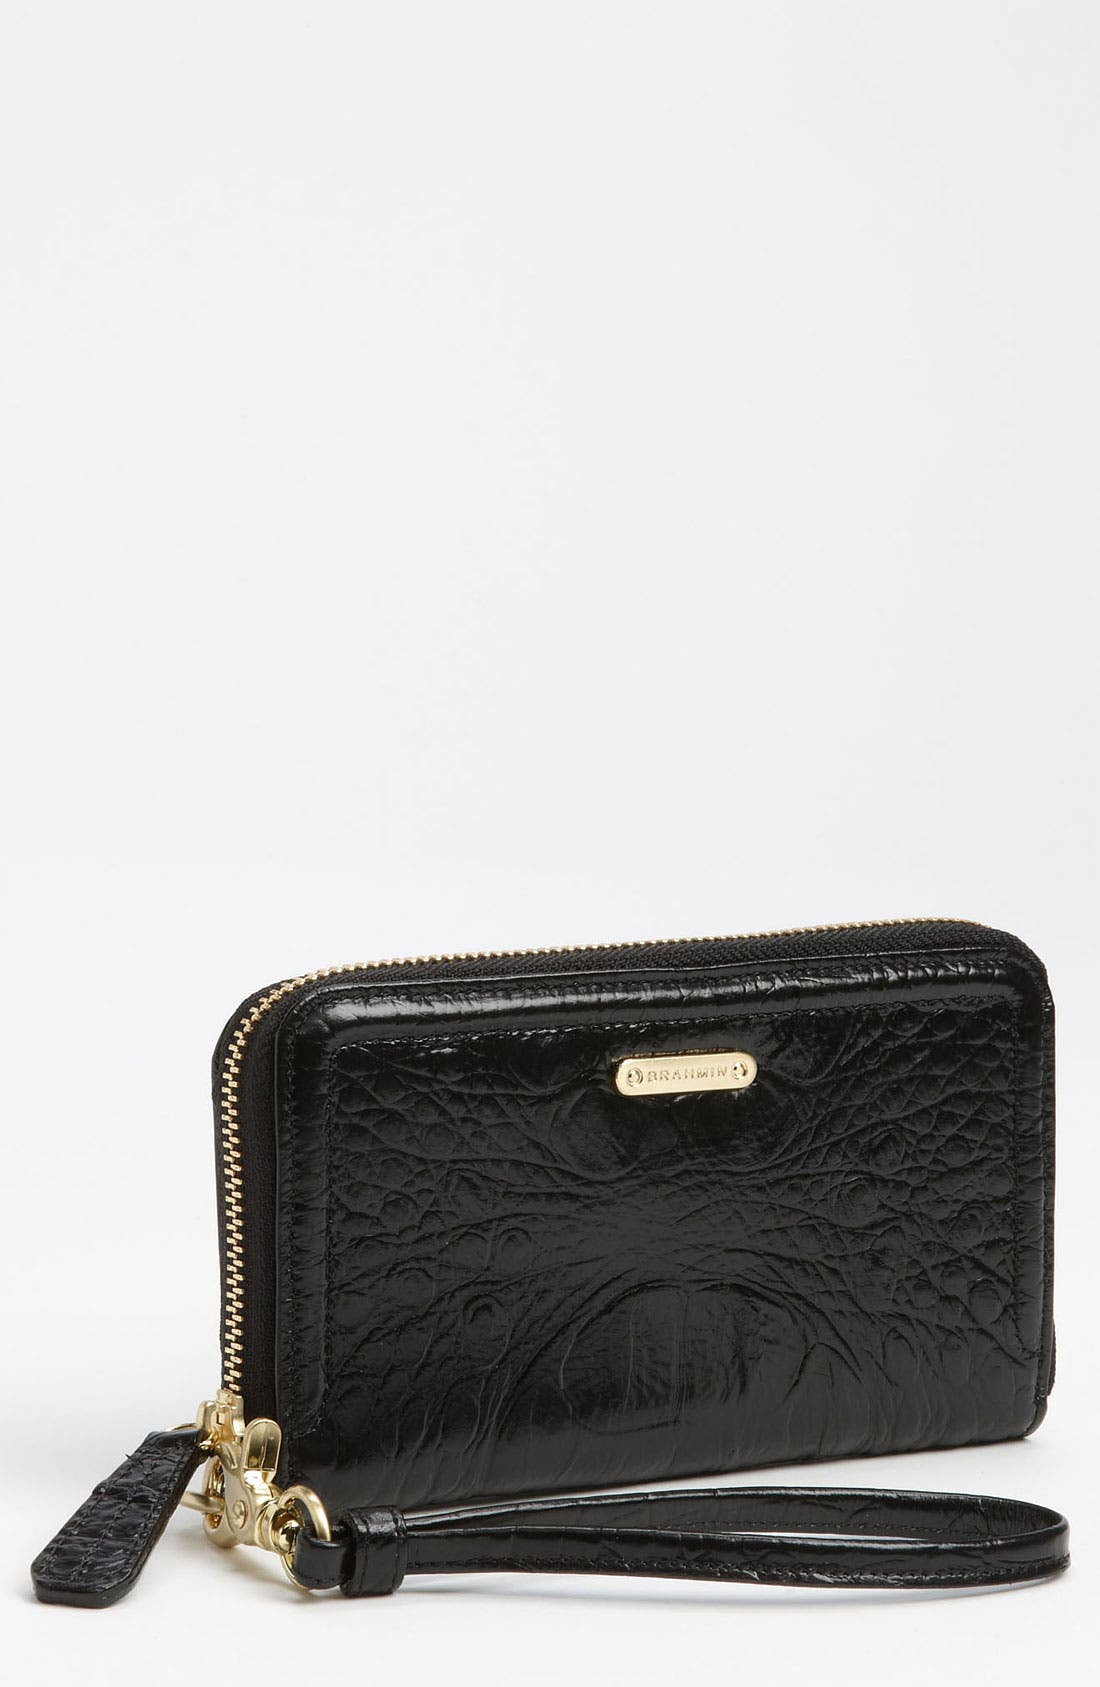 Main Image - Brahmin 'Riley' Croc Embossed Leather Wristlet